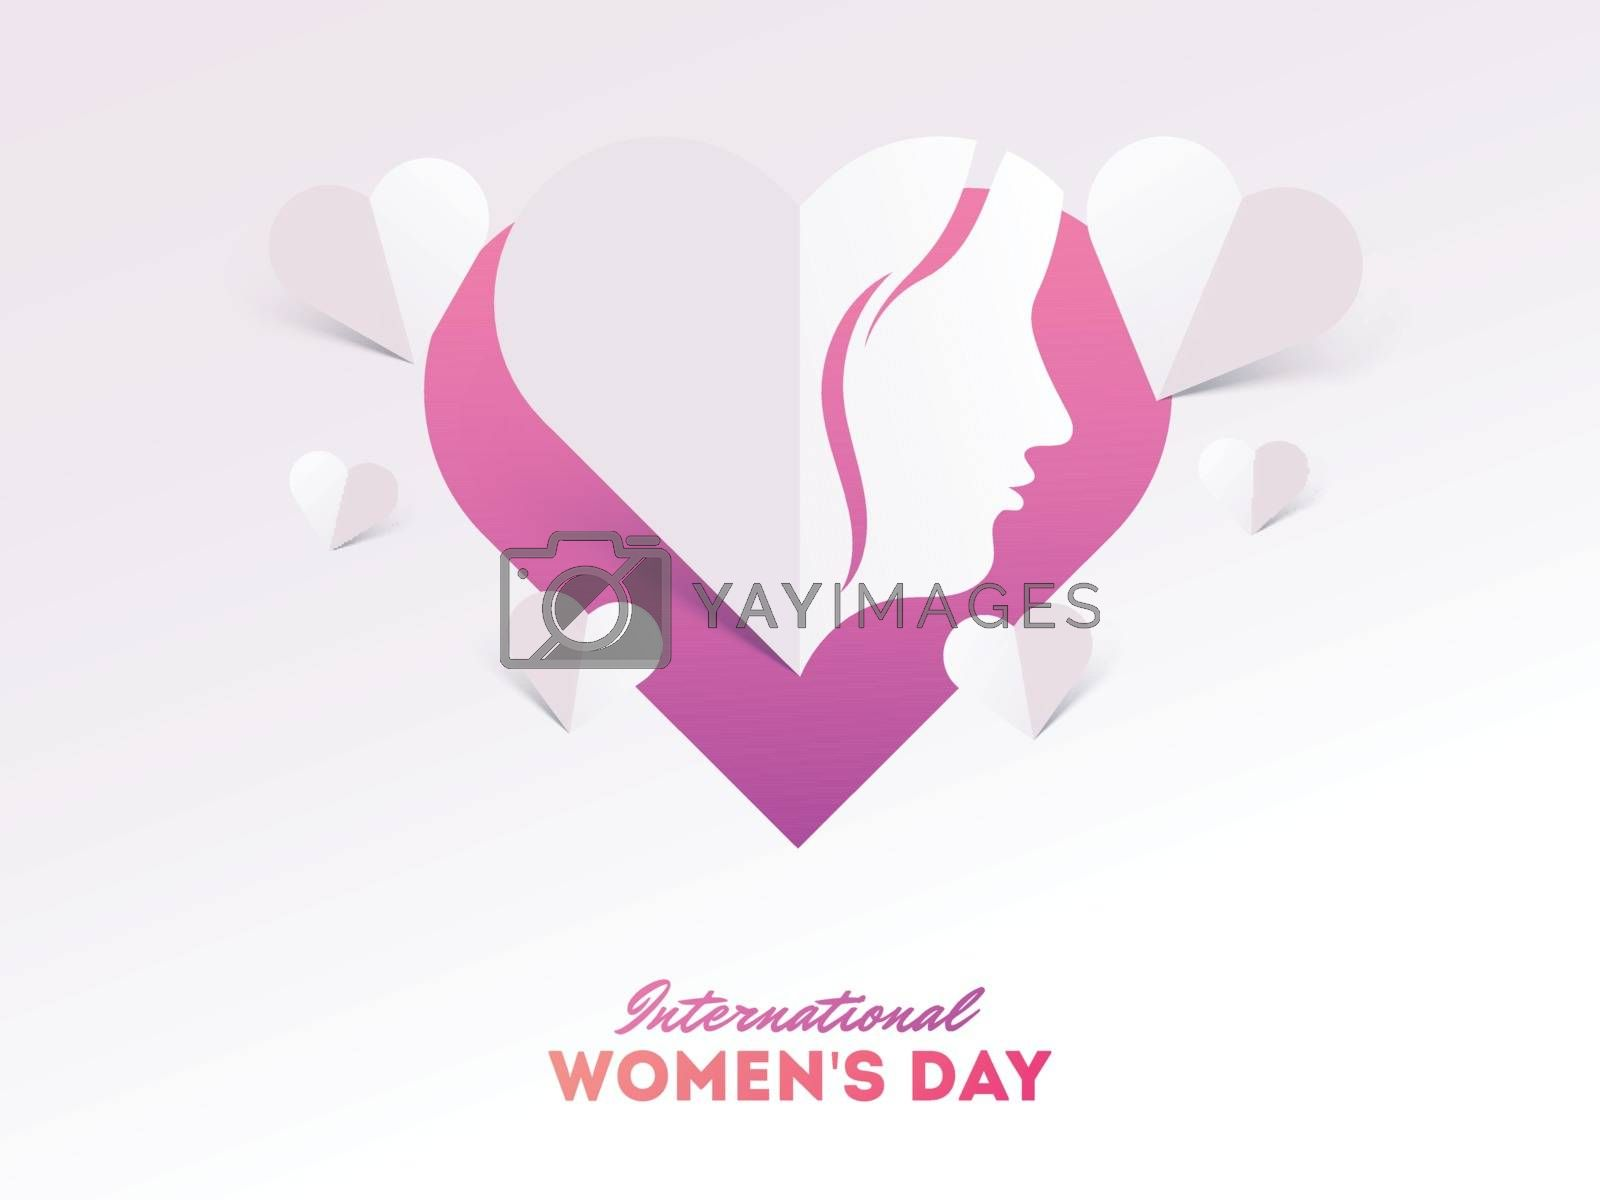 International Women's Day celebration greeting card design with tiny heart shapes.